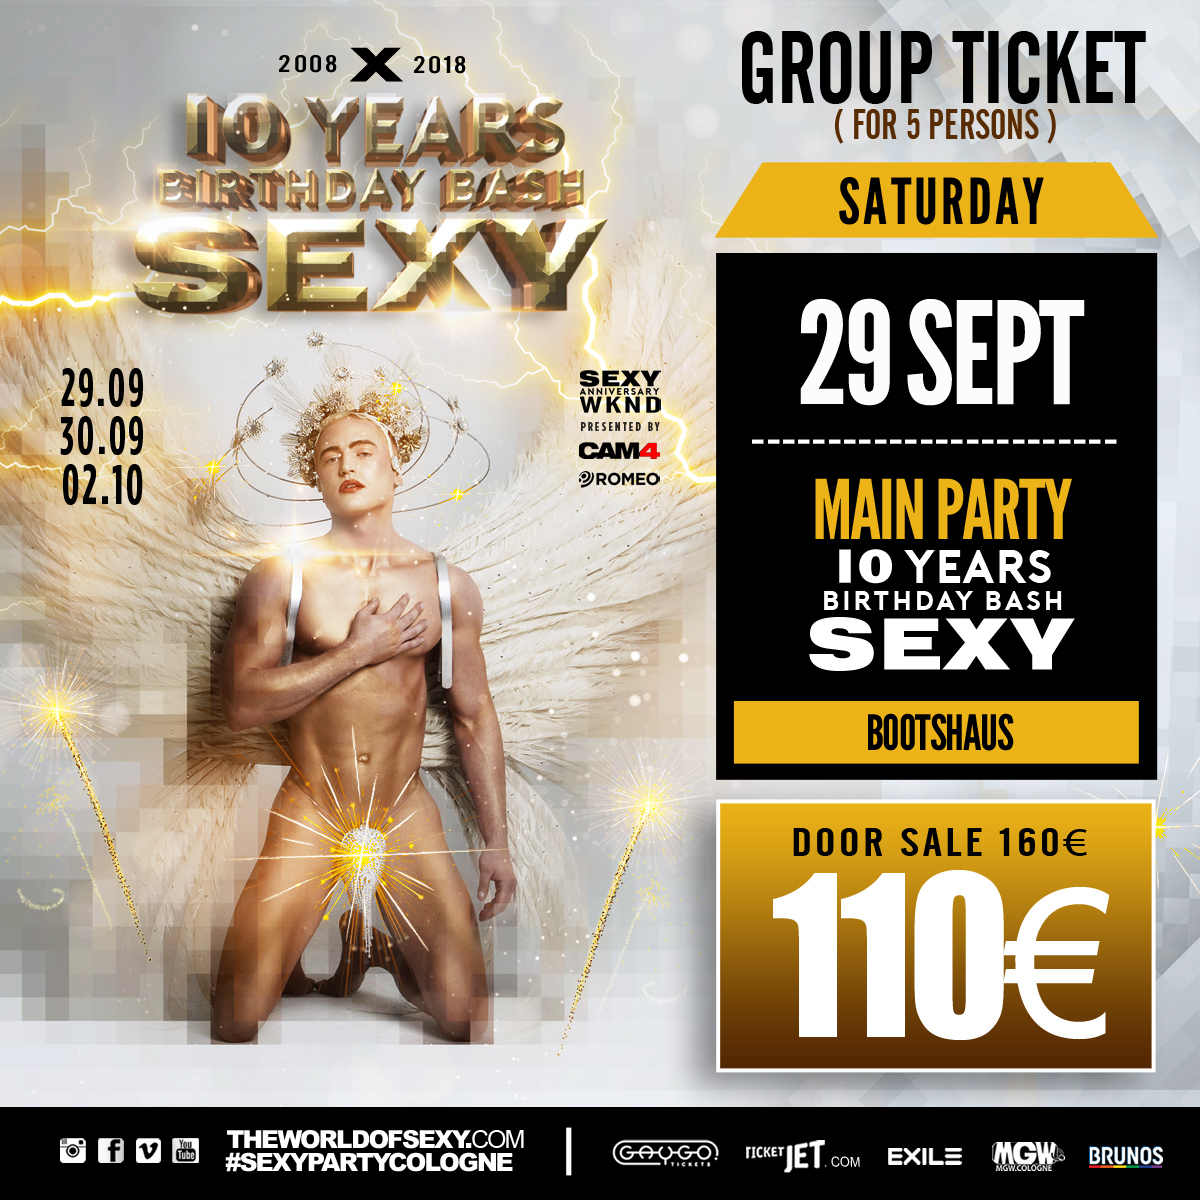 , +++ LIMITED GROUP TICKET ! +++